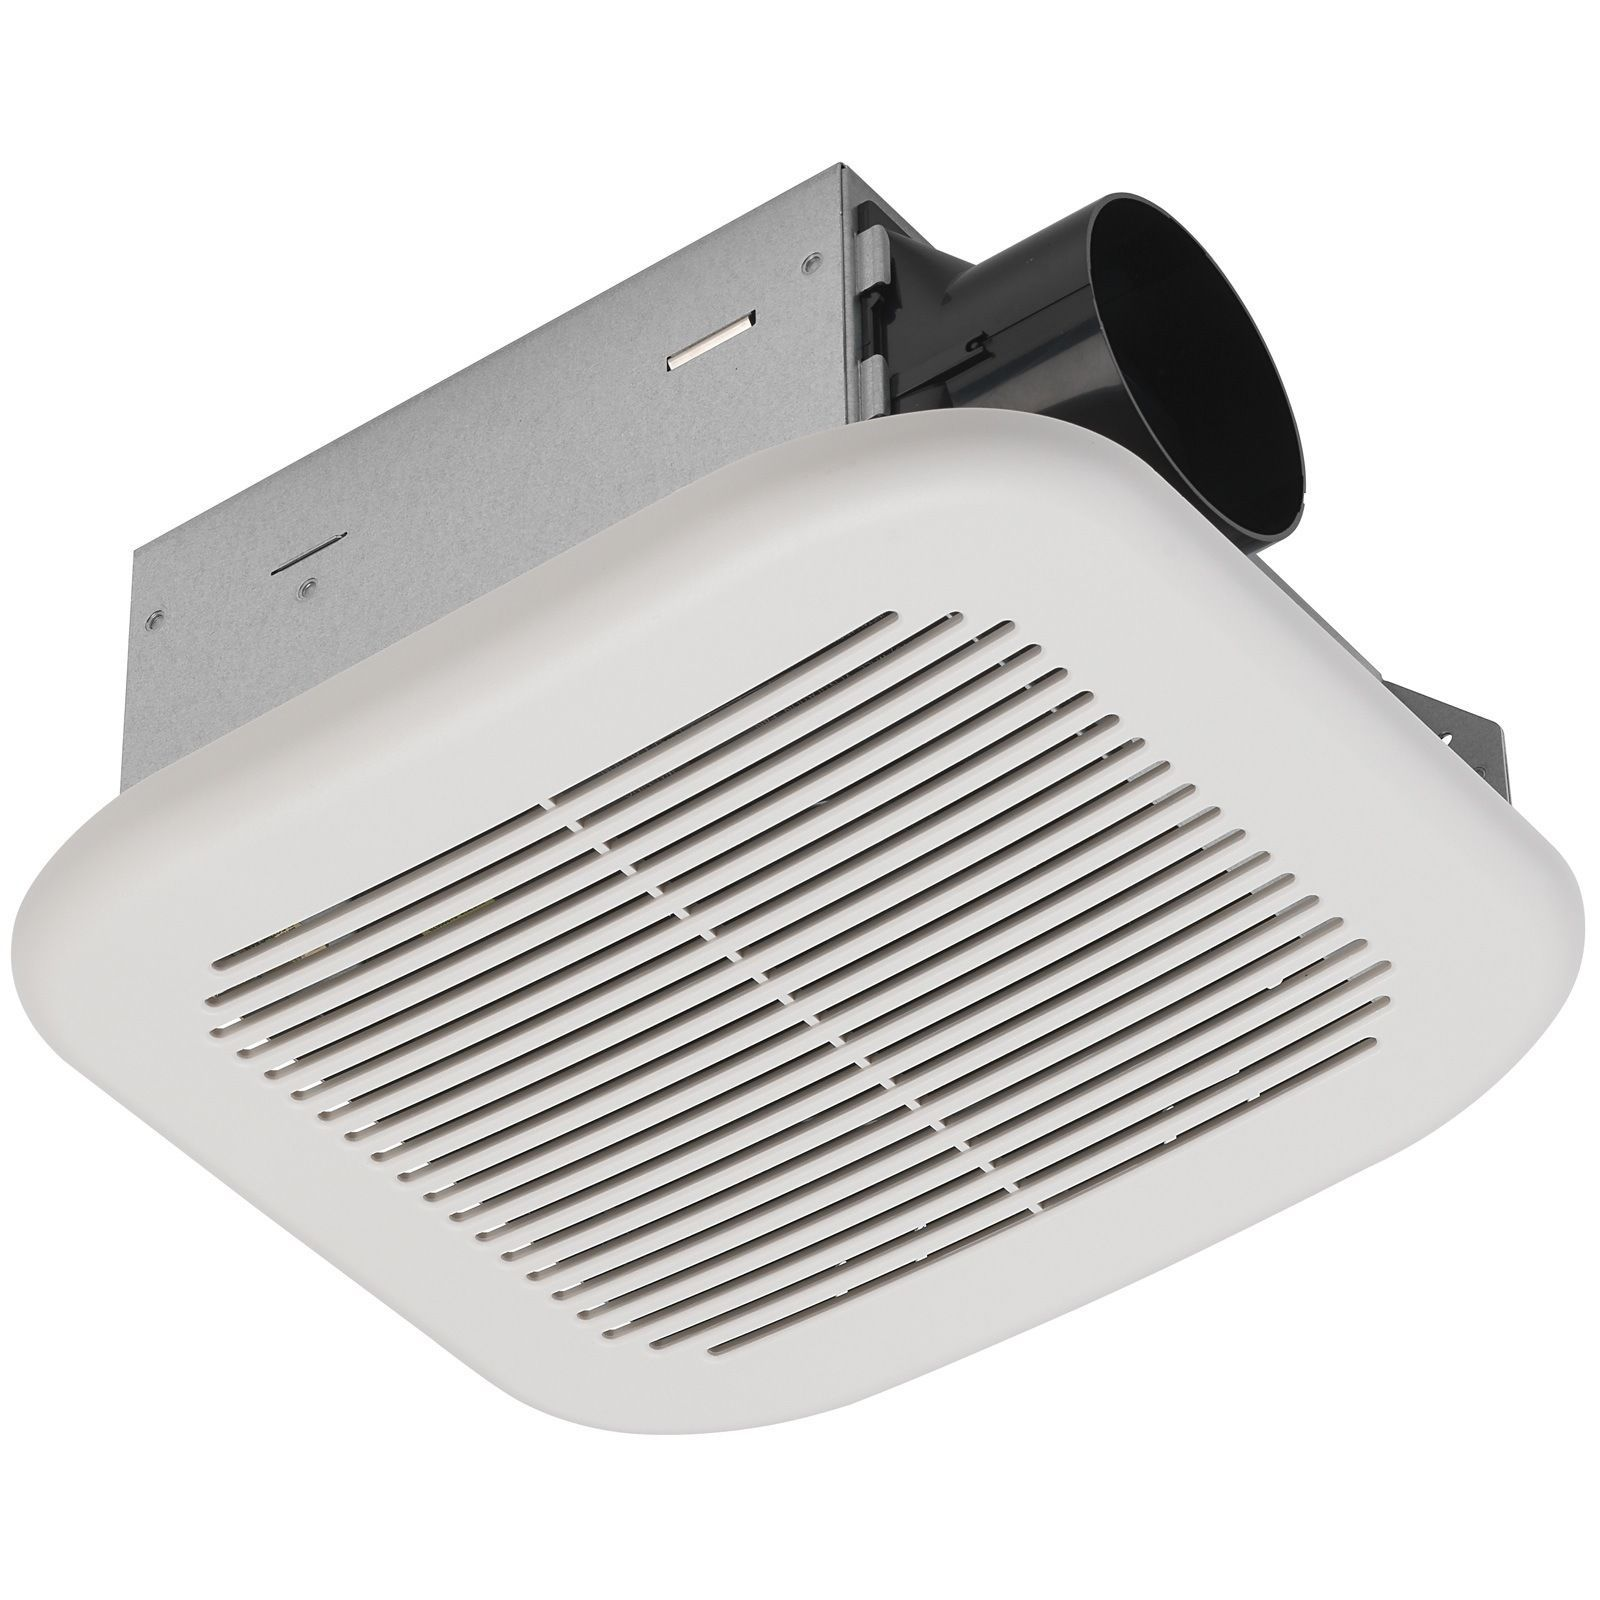 null 70 cfm ceiling exhaust fan with light and 1300watt heater ceilings lights and bath ideas - Panasonic Bathroom Fans